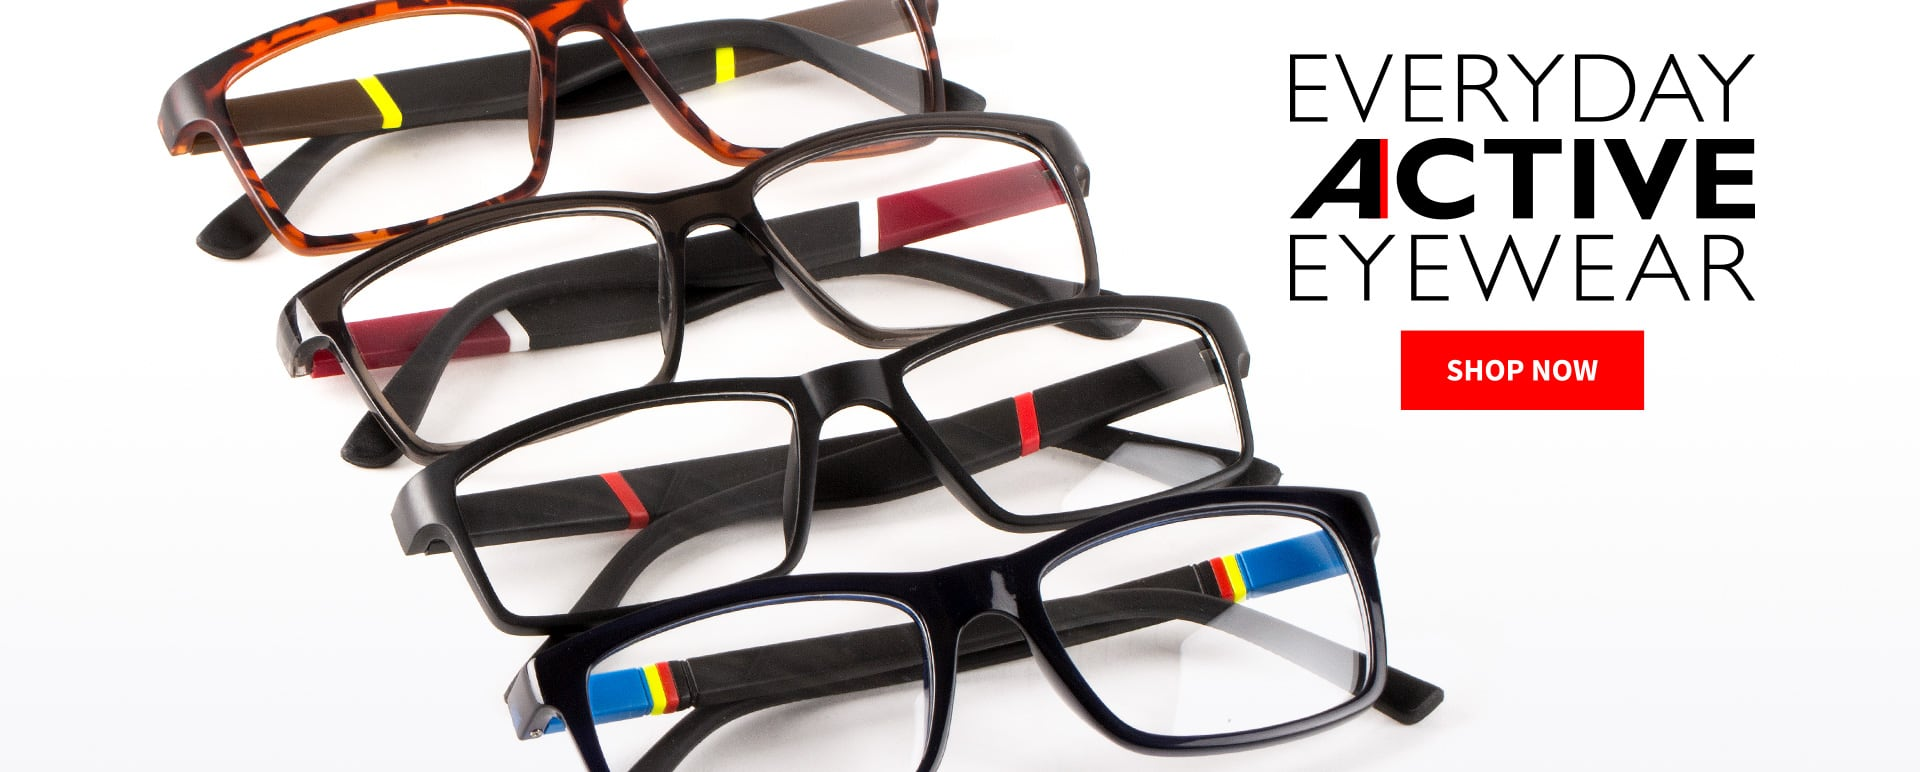 Everyday Active Eyewear | Zenni Optical